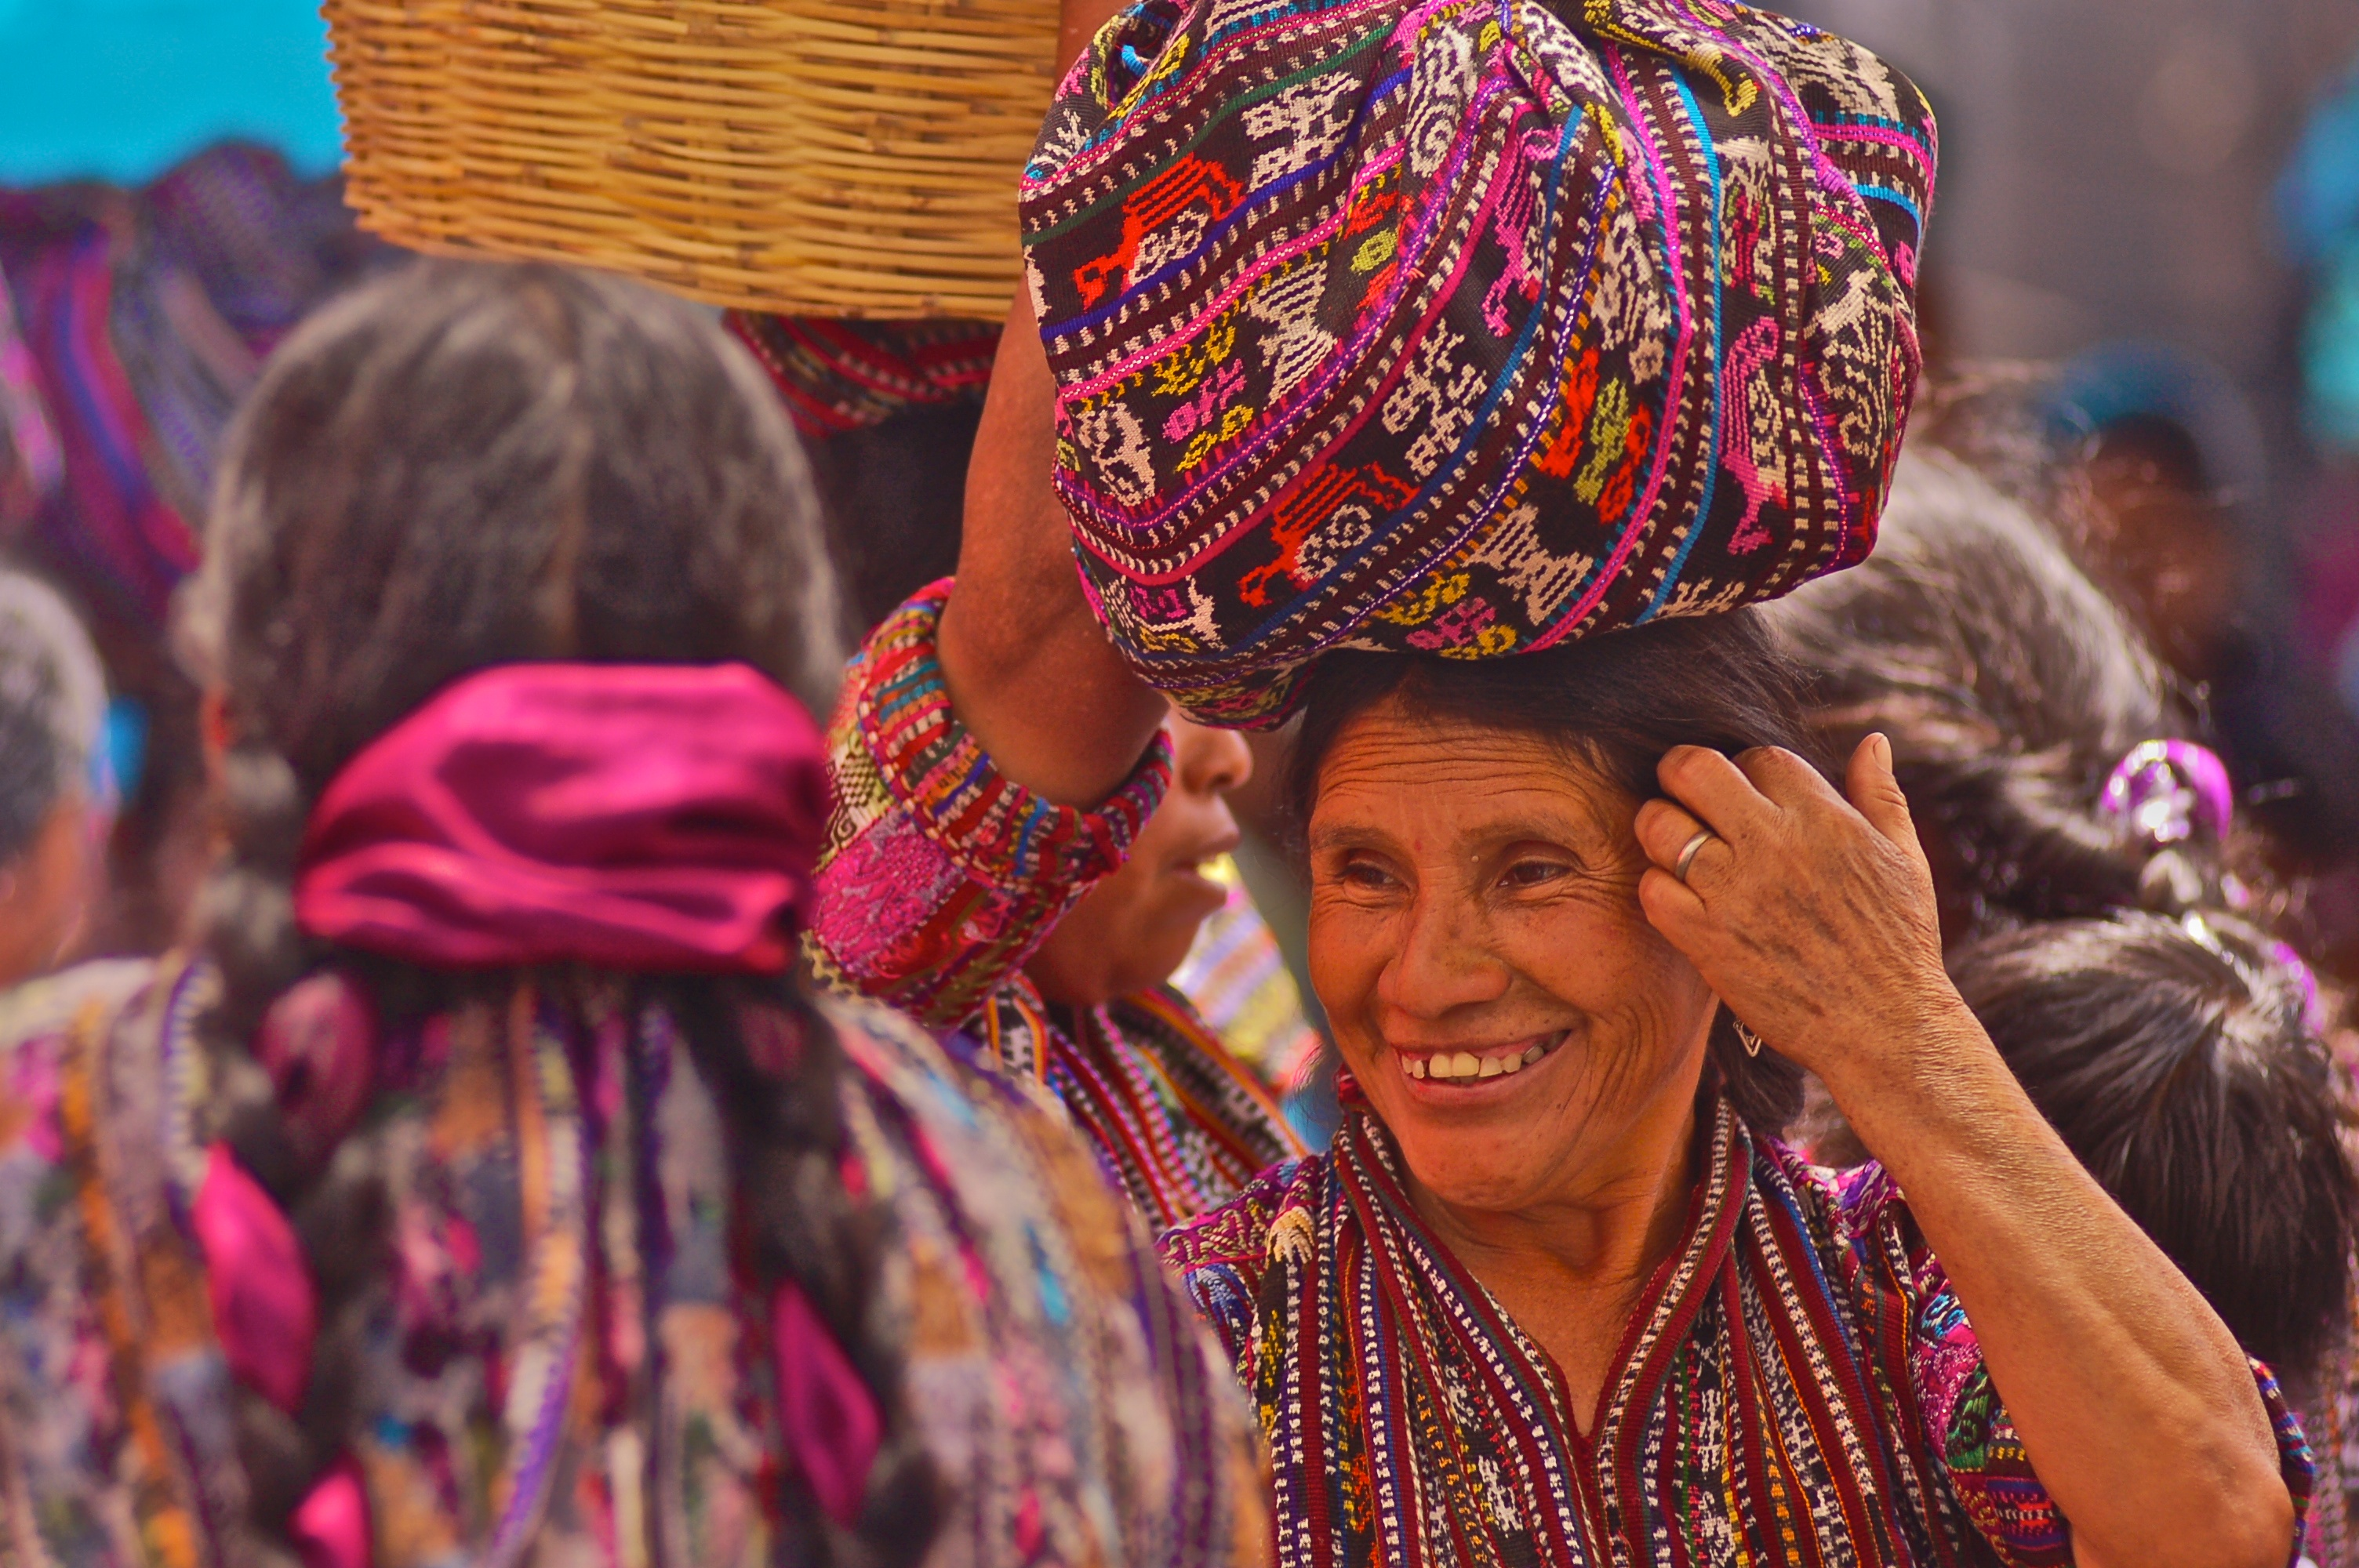 A women carrying goods in the market at Solala.